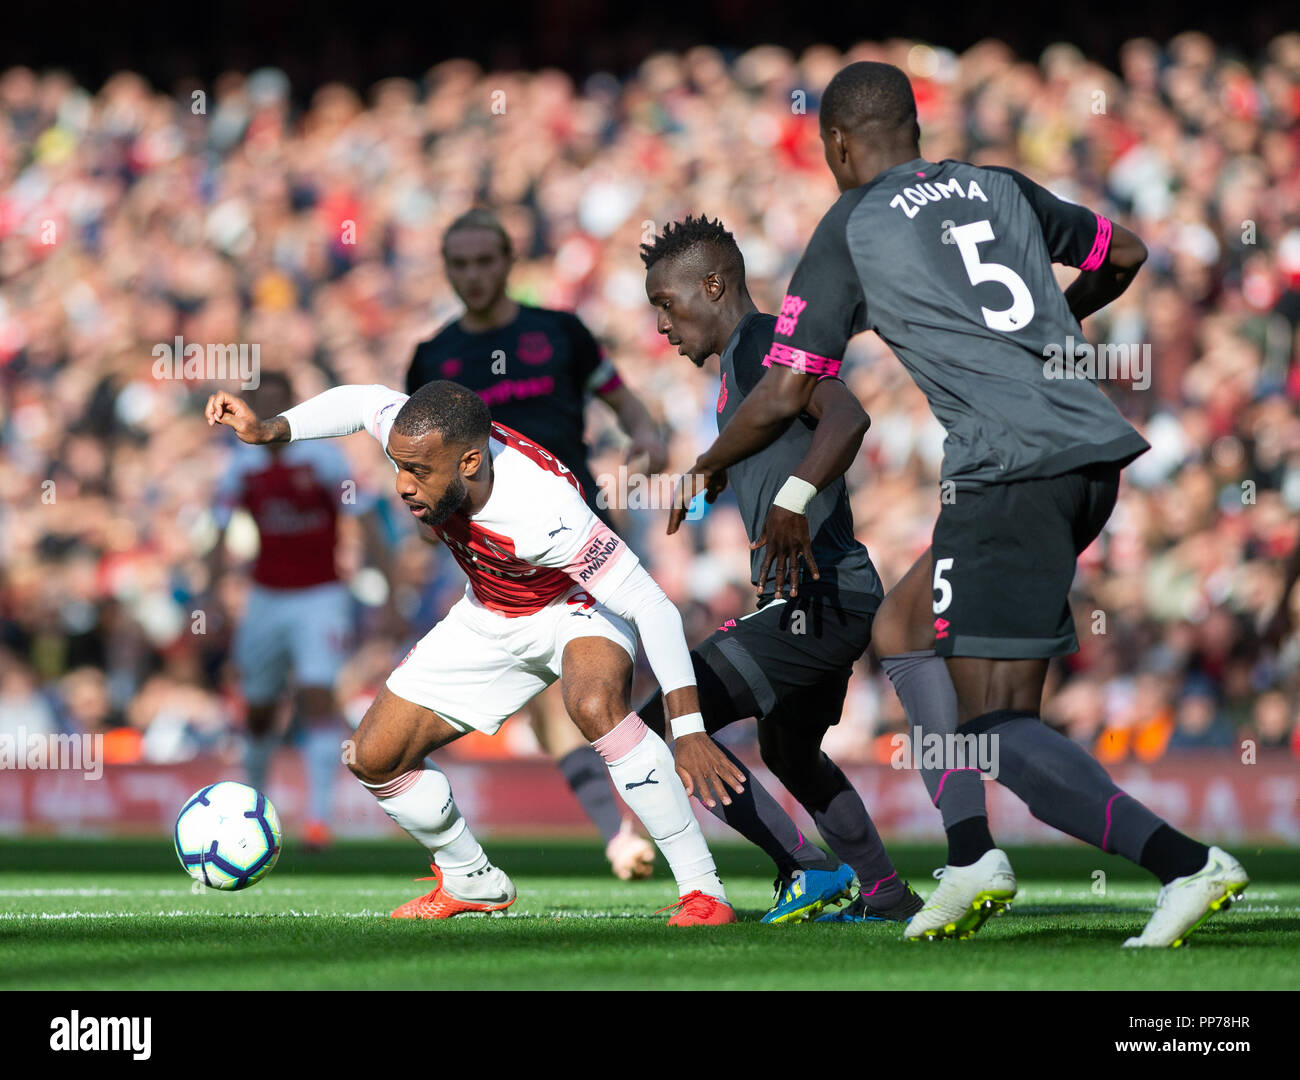 London, UK. 23rd Sep, 2018. Alexandre Lacazette (L) of Arsenal competes during the English Premier League match between Arsenal and Everton at the Emirates Stadium in London, Britain on Sept. 23, 2018. Arsenal won 2-0. Credit: Marek Dorcik/Xinhua/Alamy Live News Stock Photo